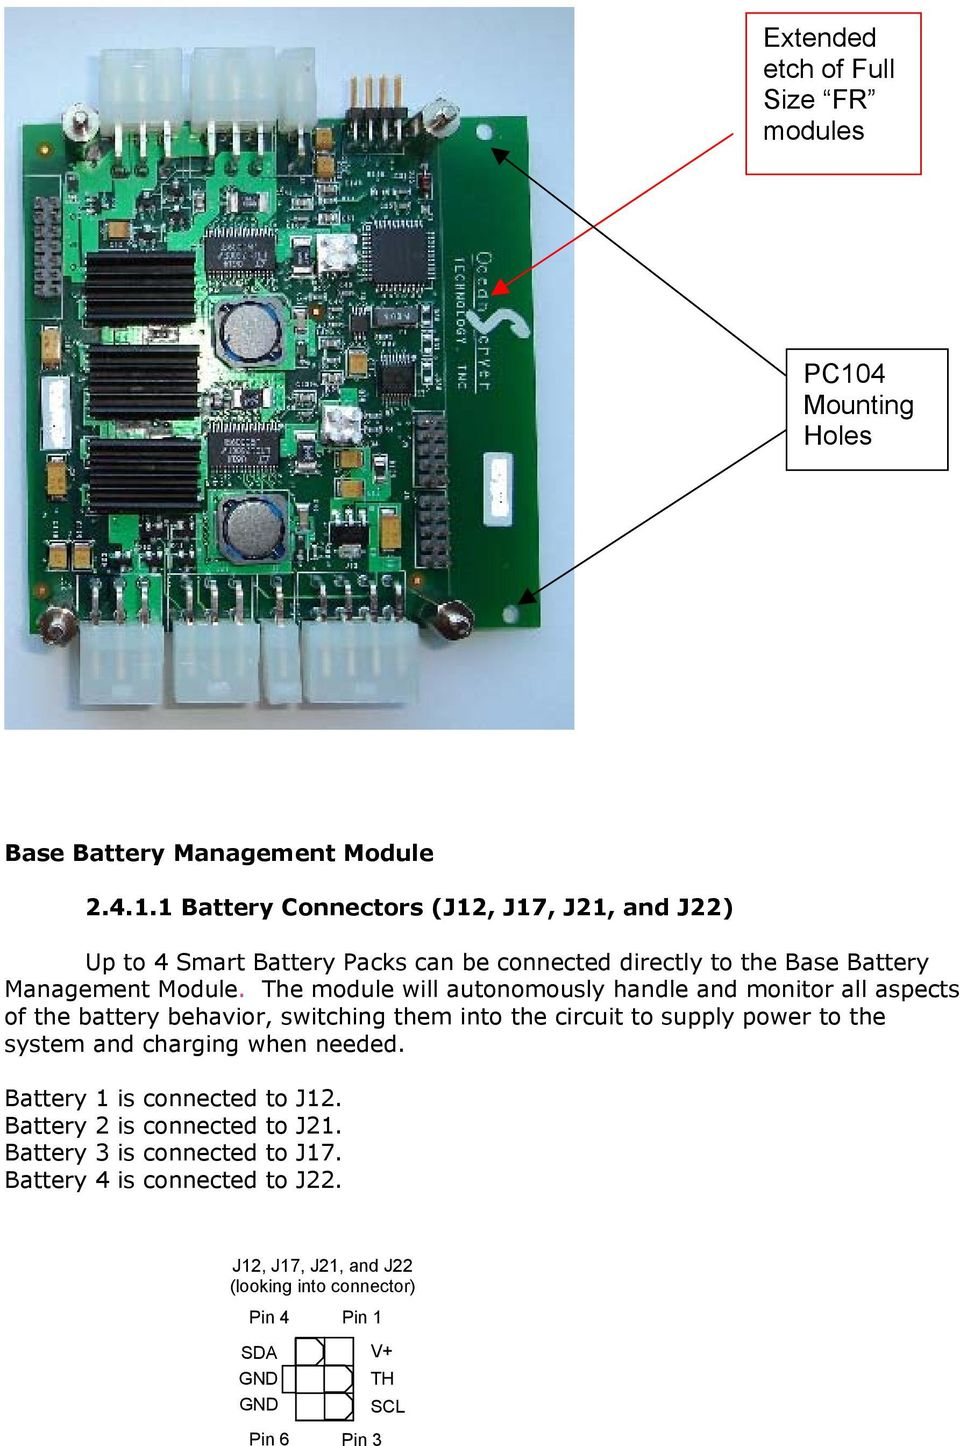 Ibps Hardware User S Guide Rev 35 June Intelligent Battery And 12a Laptop Ac Power Adapters Of 144w With Short Circuit Protection 1 Connectors J12 J17 J21 J22 Up To 4